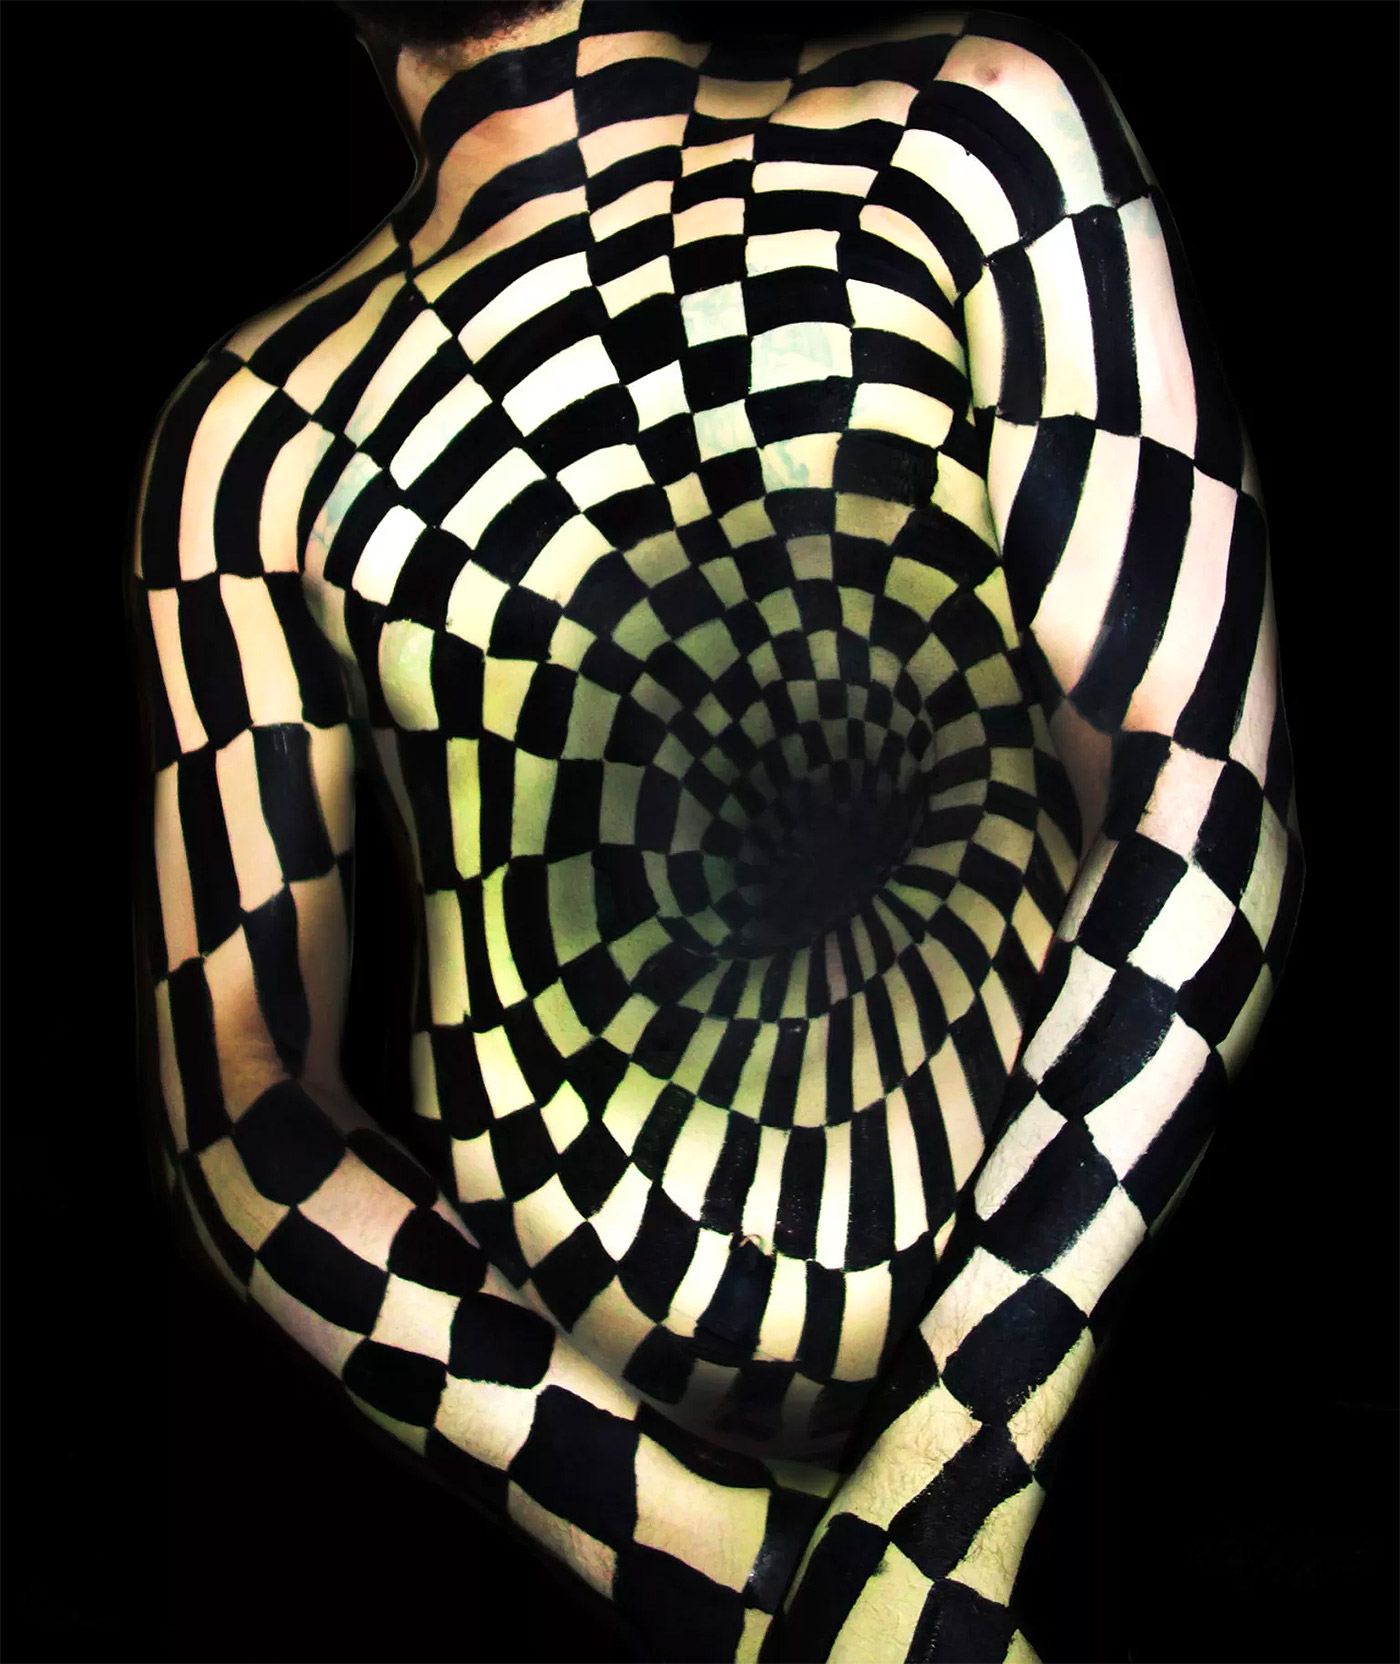 Just An Illusion Amazing Body Art By Natalie Fletcher Daily Design Inspiration For Creatives Inspiration Grid